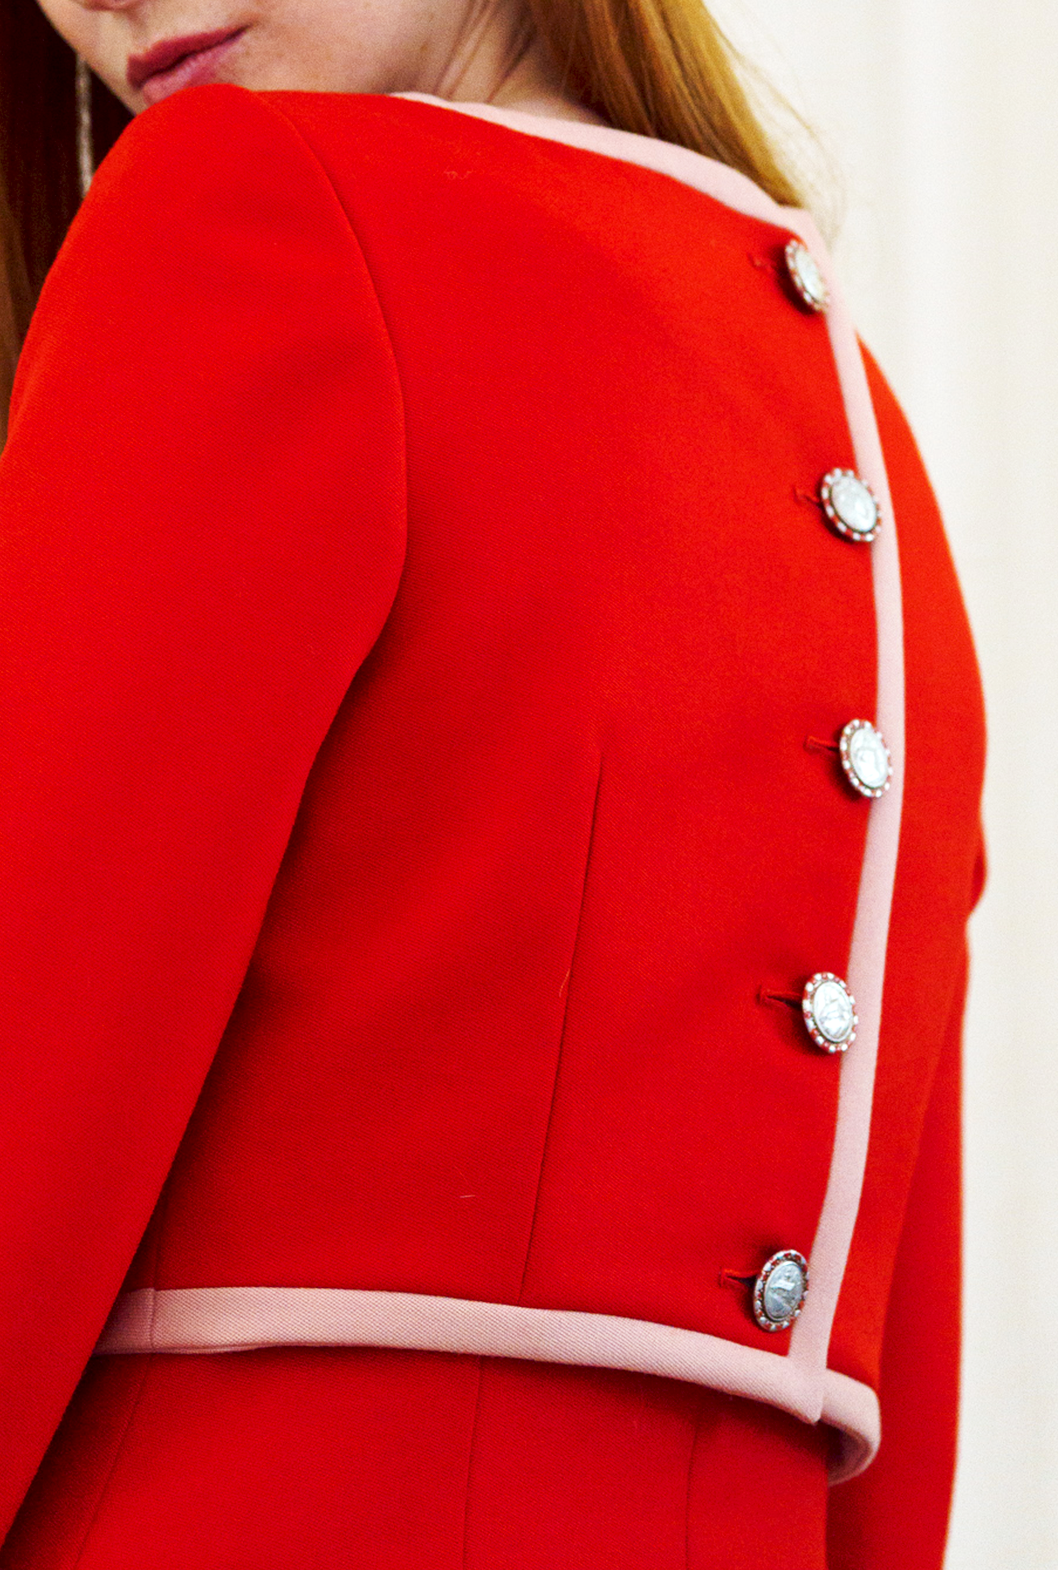 18 S Red Piping Suit Detail.png